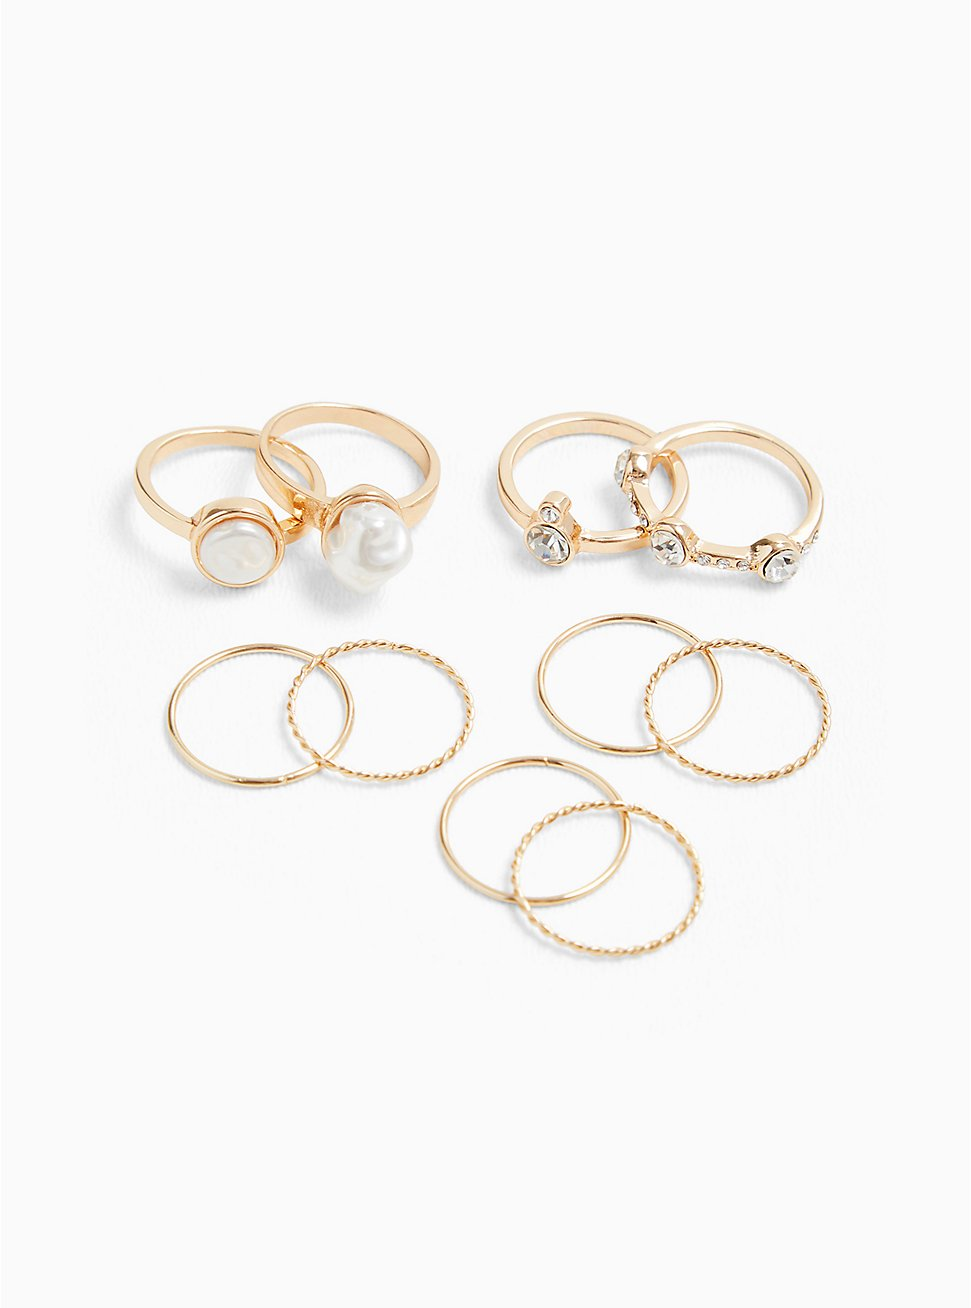 Gold-Tone Faux Pearl Ring Set - Set of 10, GOLD, hi-res